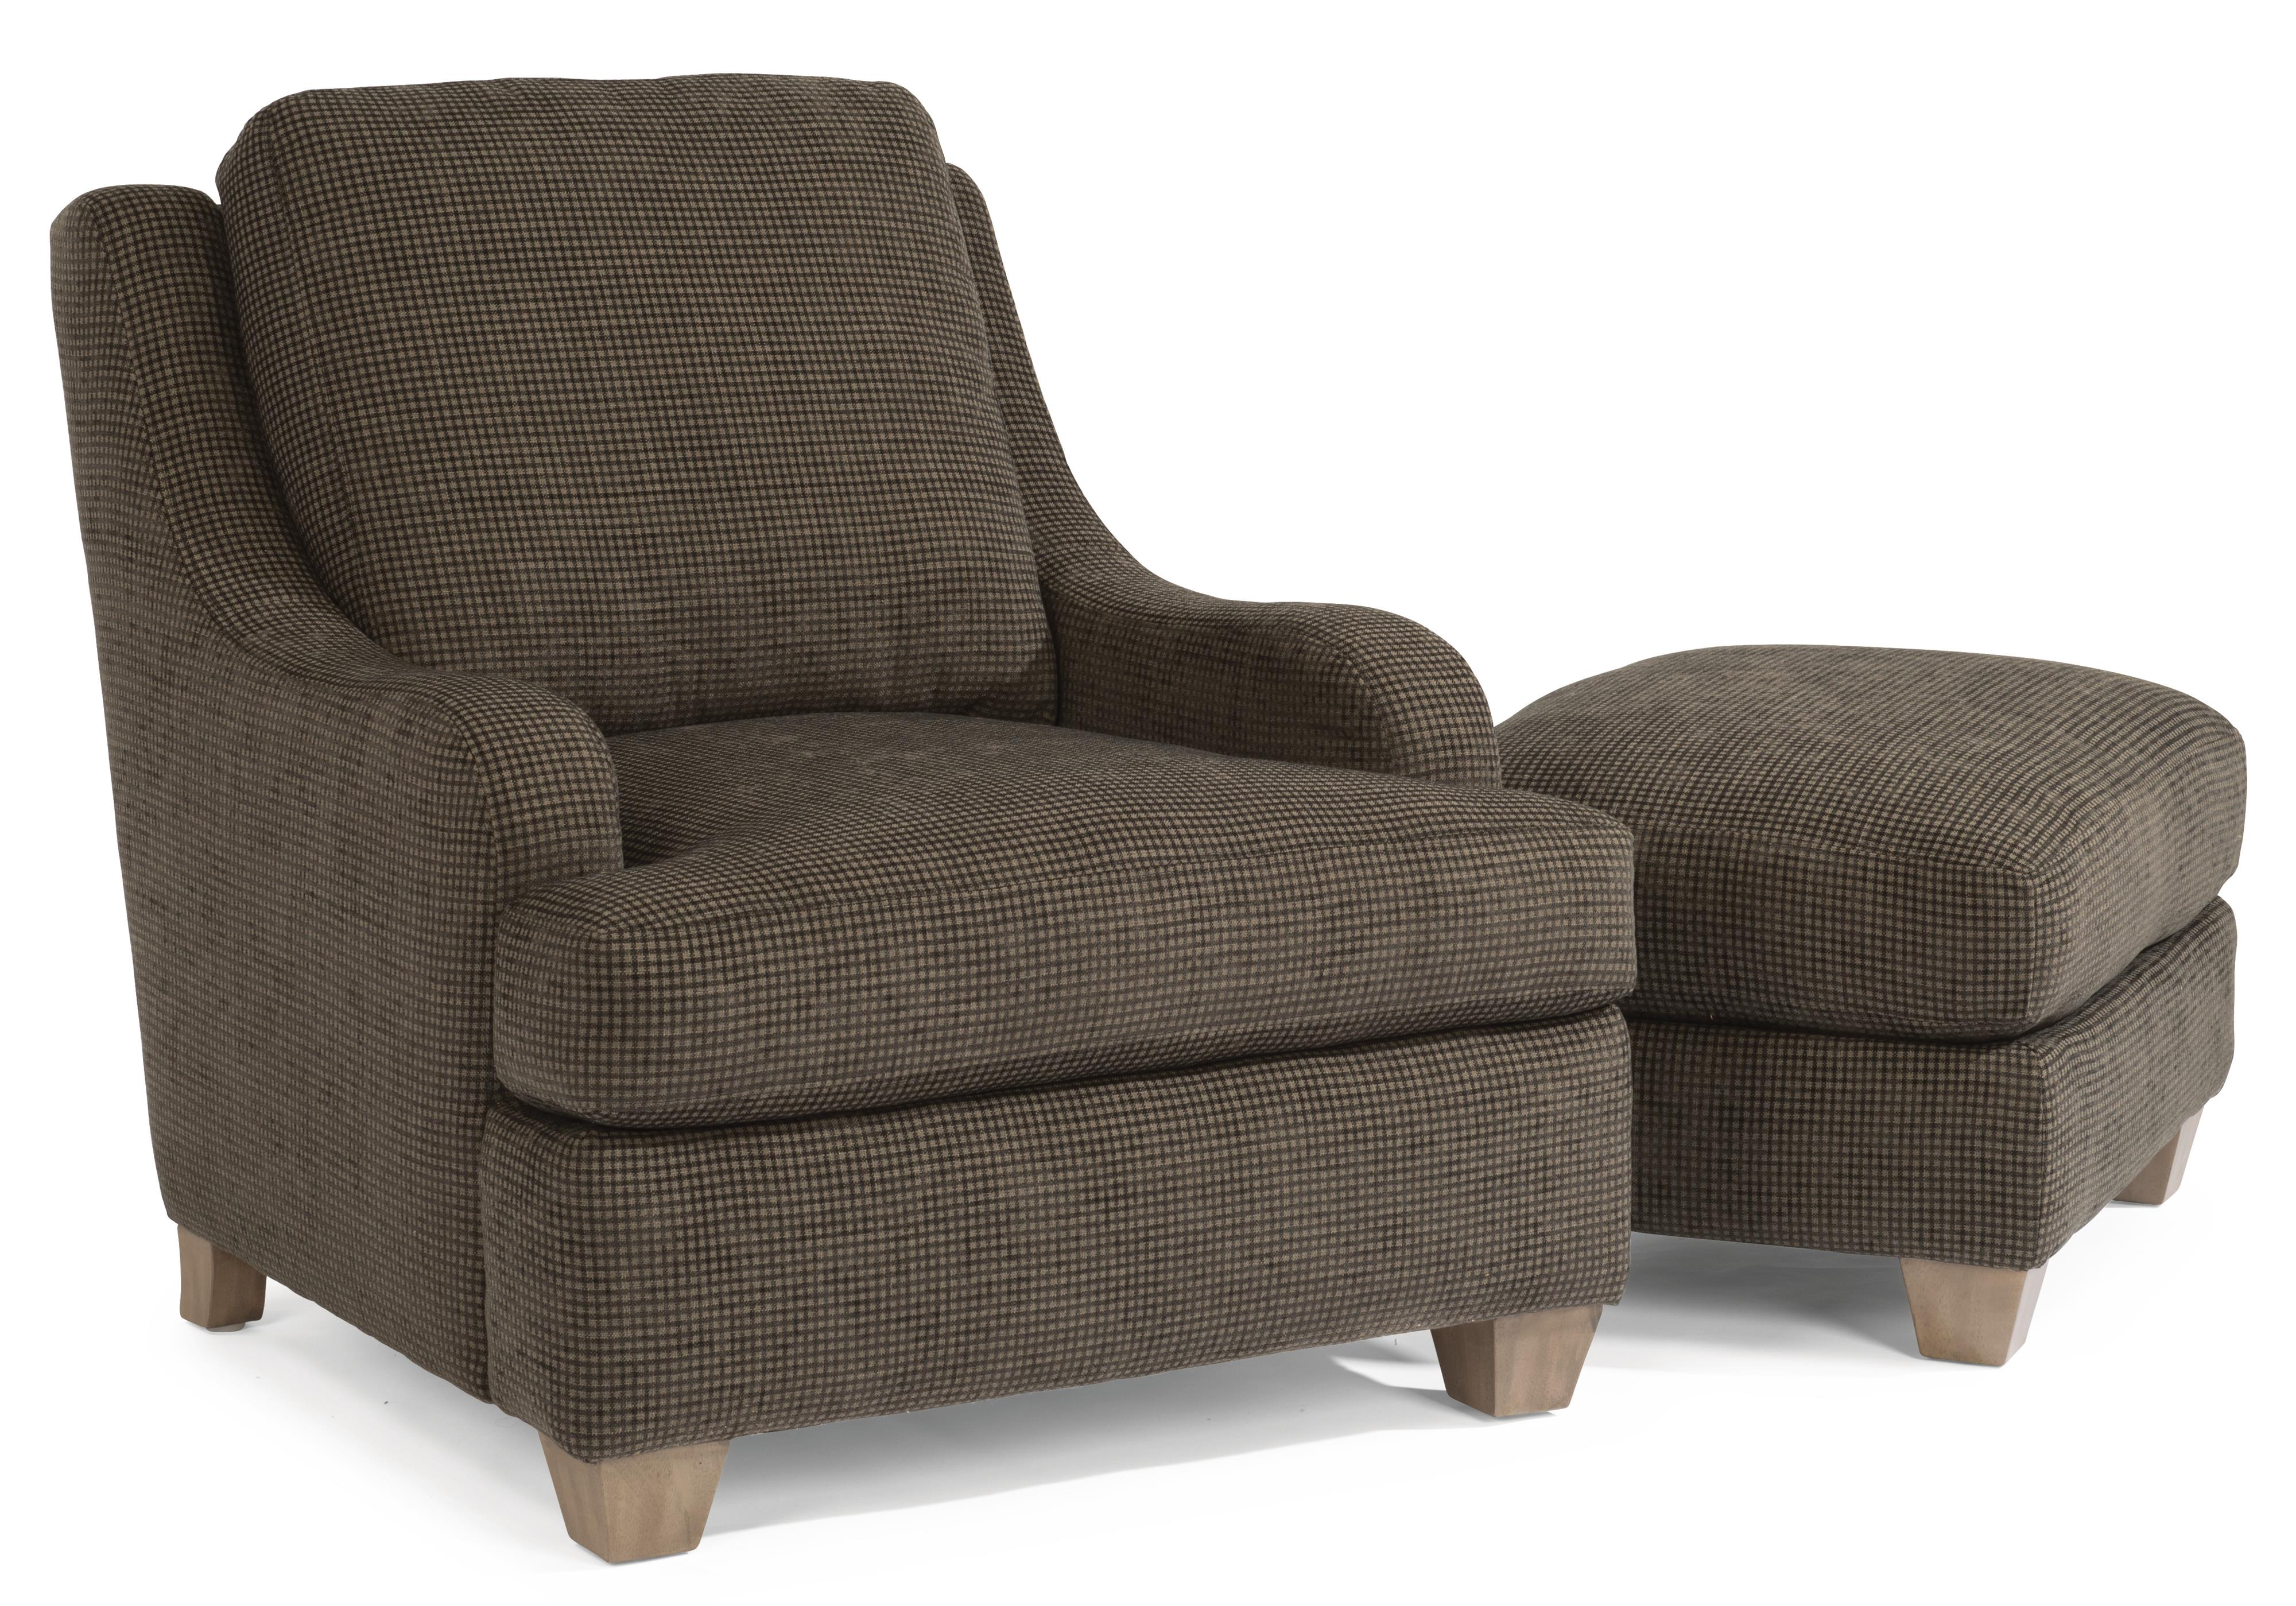 Flexsteel Accents Salem Chair & Ottoman Set - Item Number: 0111-10+0111-08-958-02